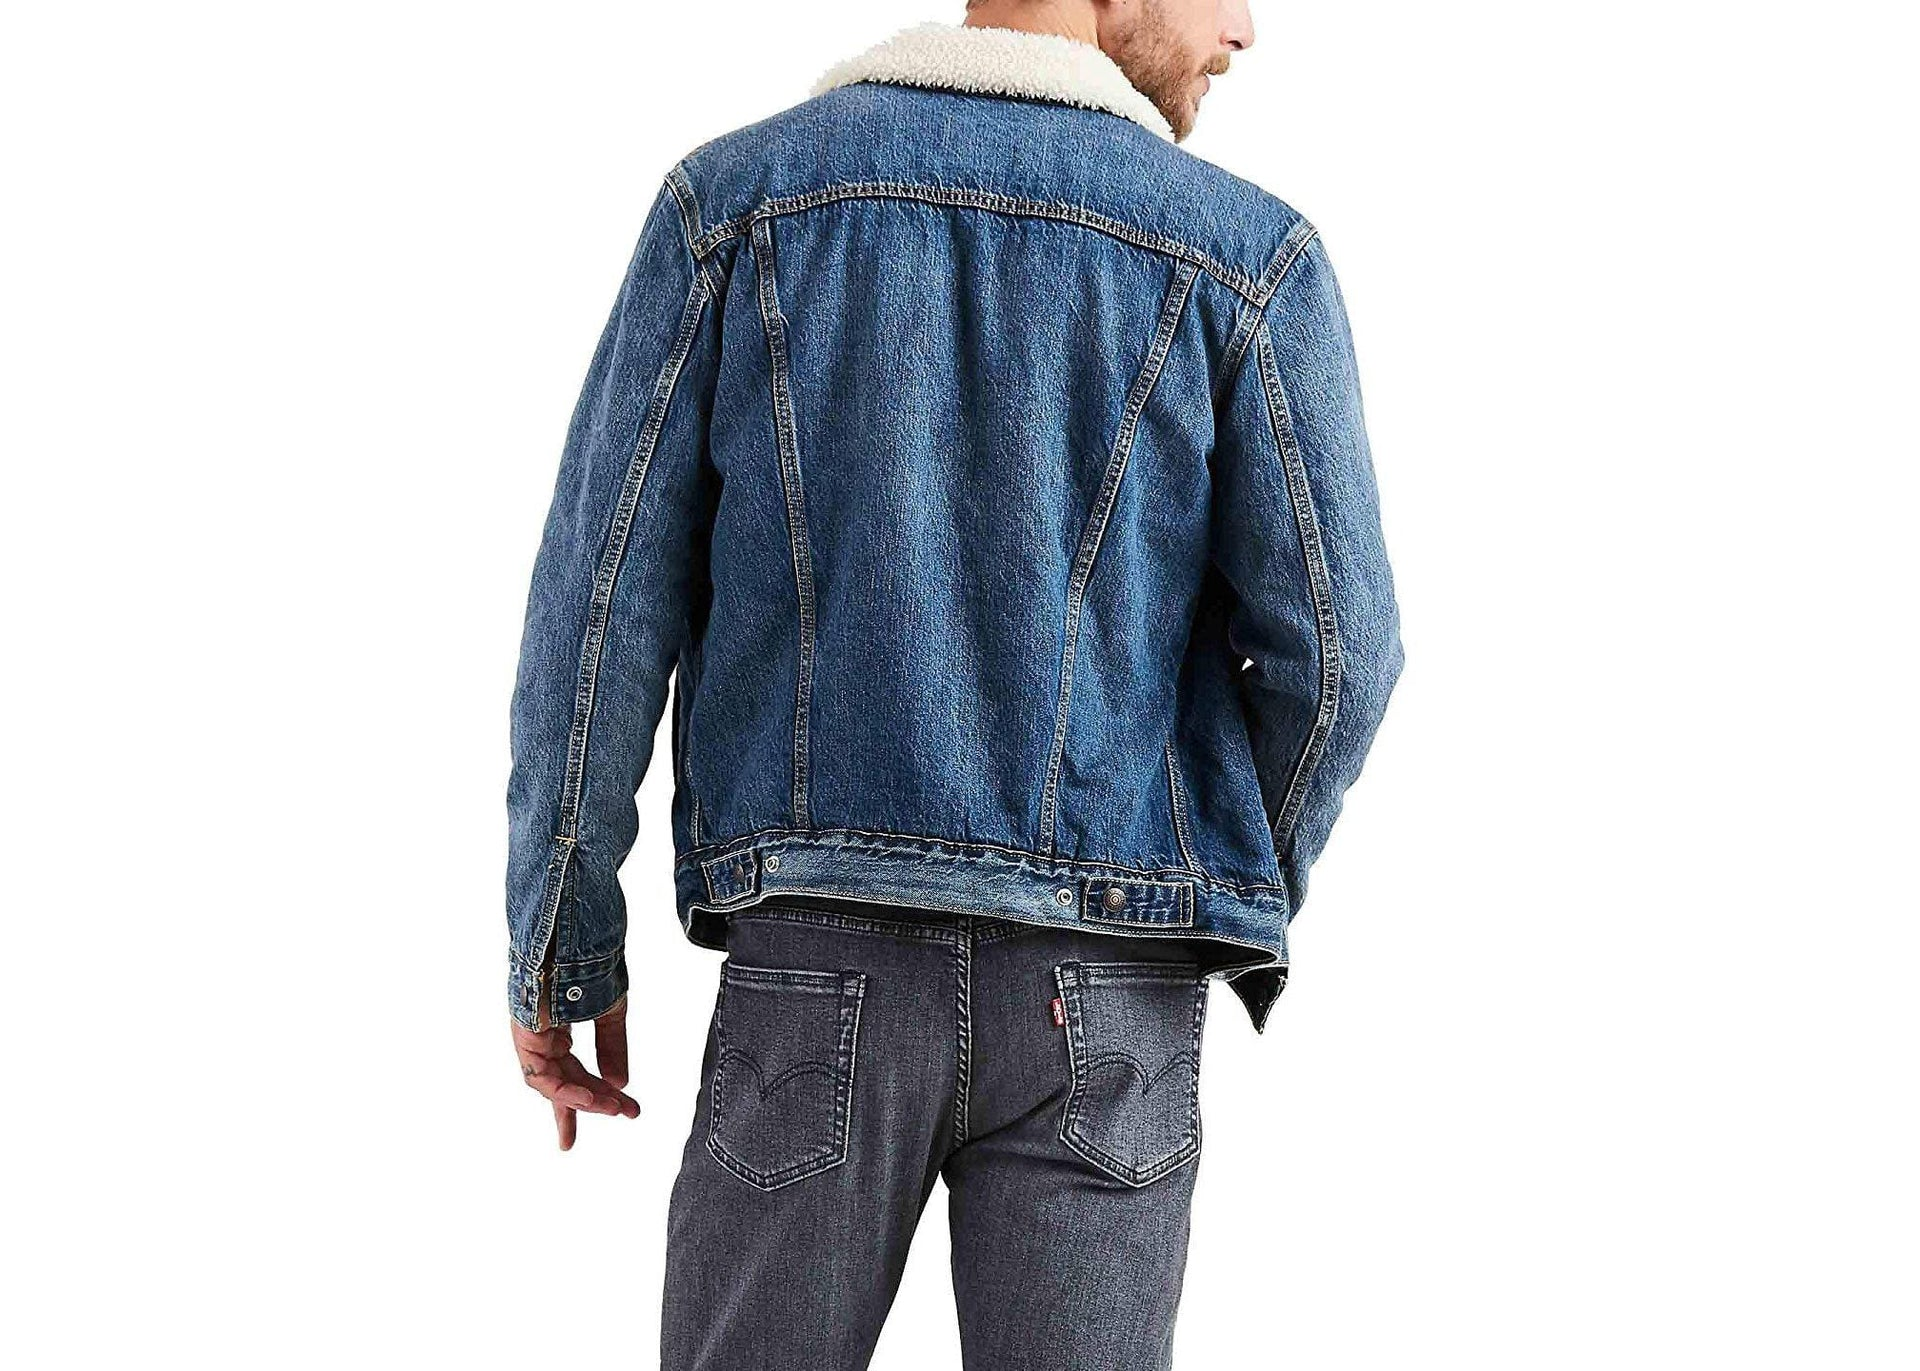 SHERPA TRUCKER JACKET MENS SOFTGOODS LEVIS